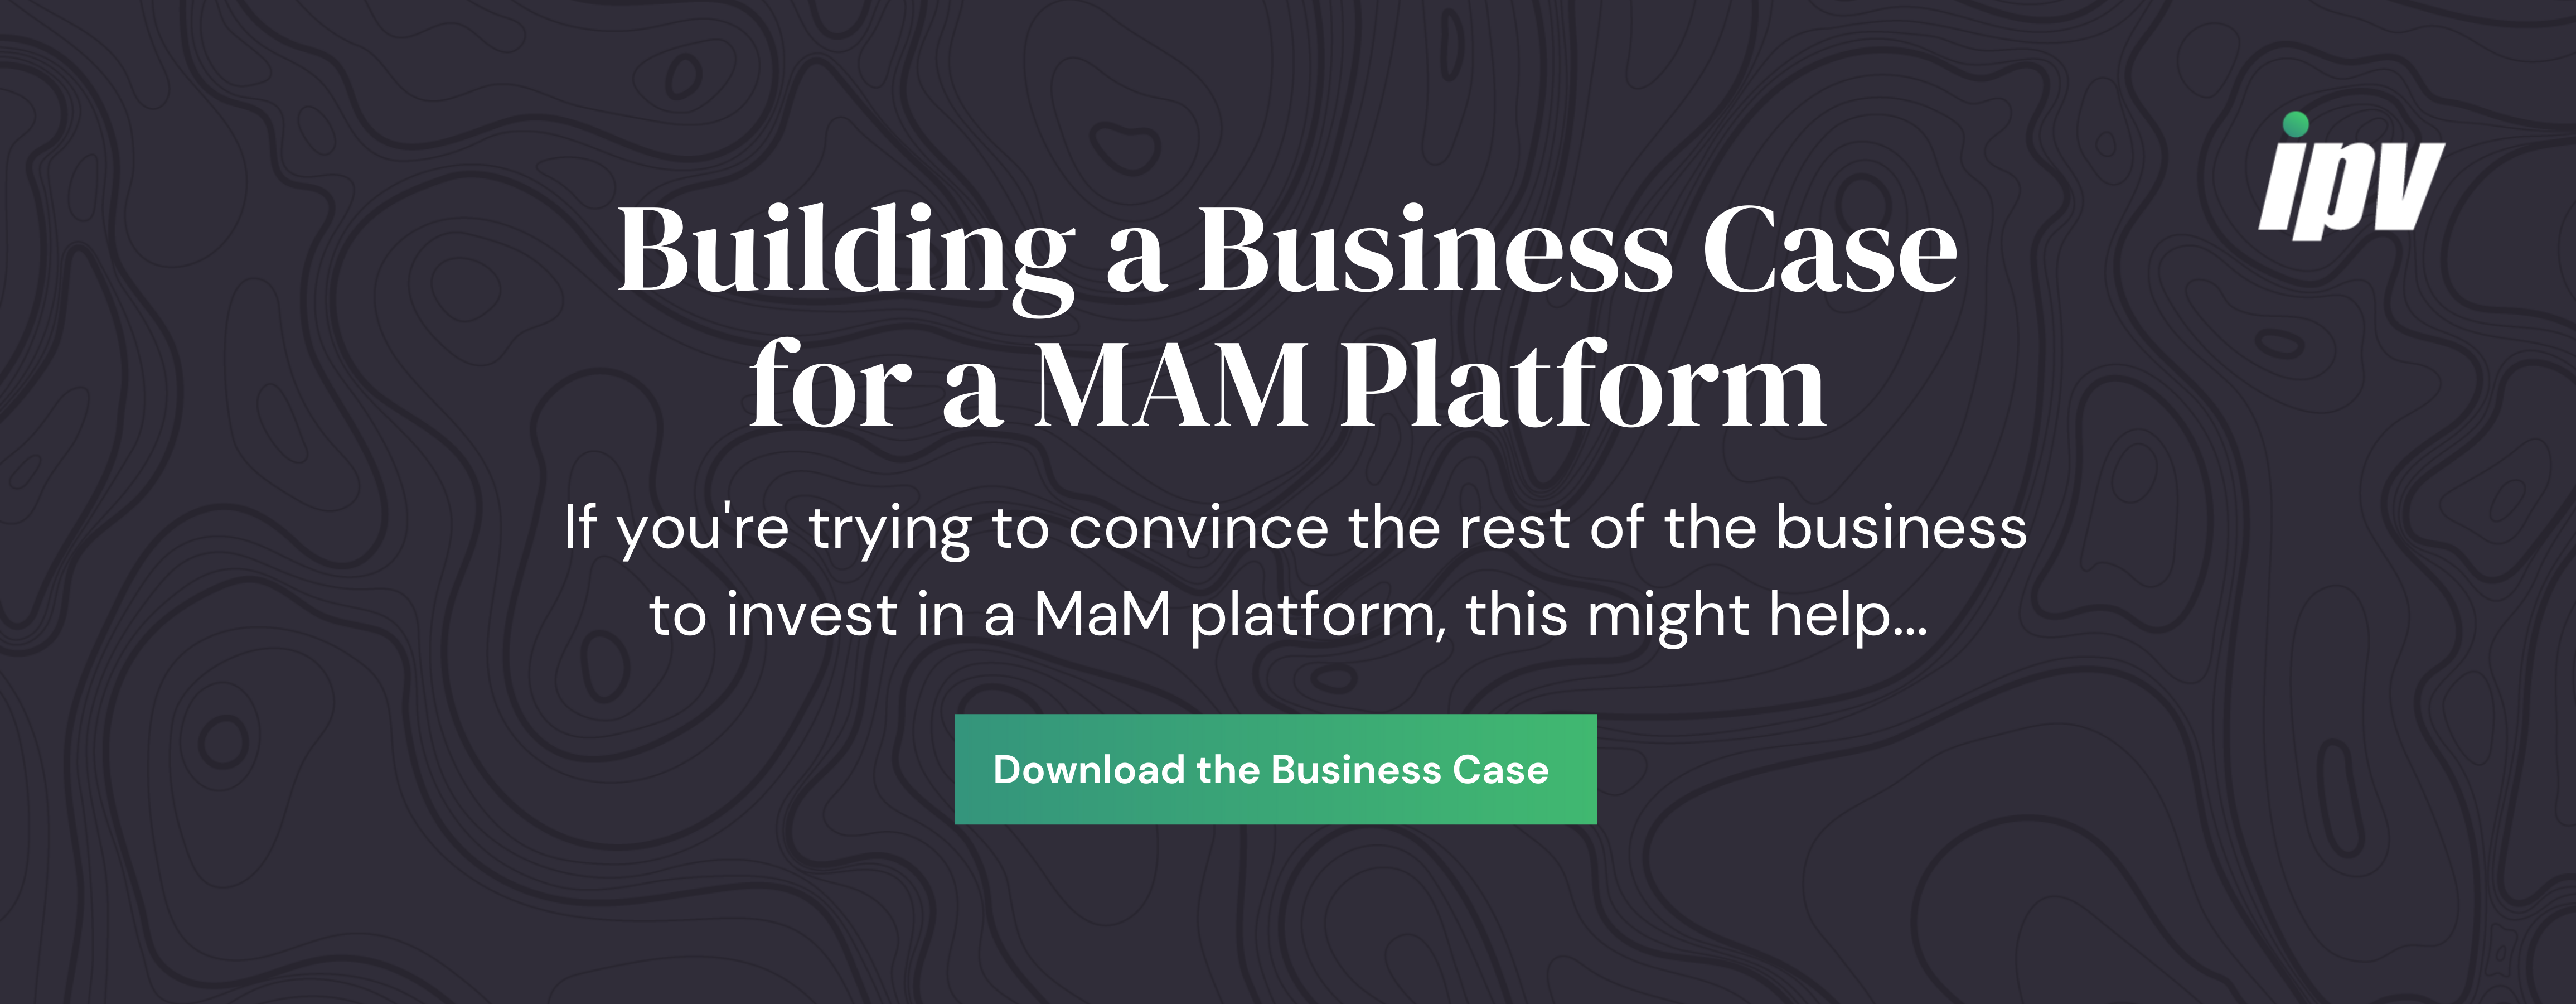 Download the business case